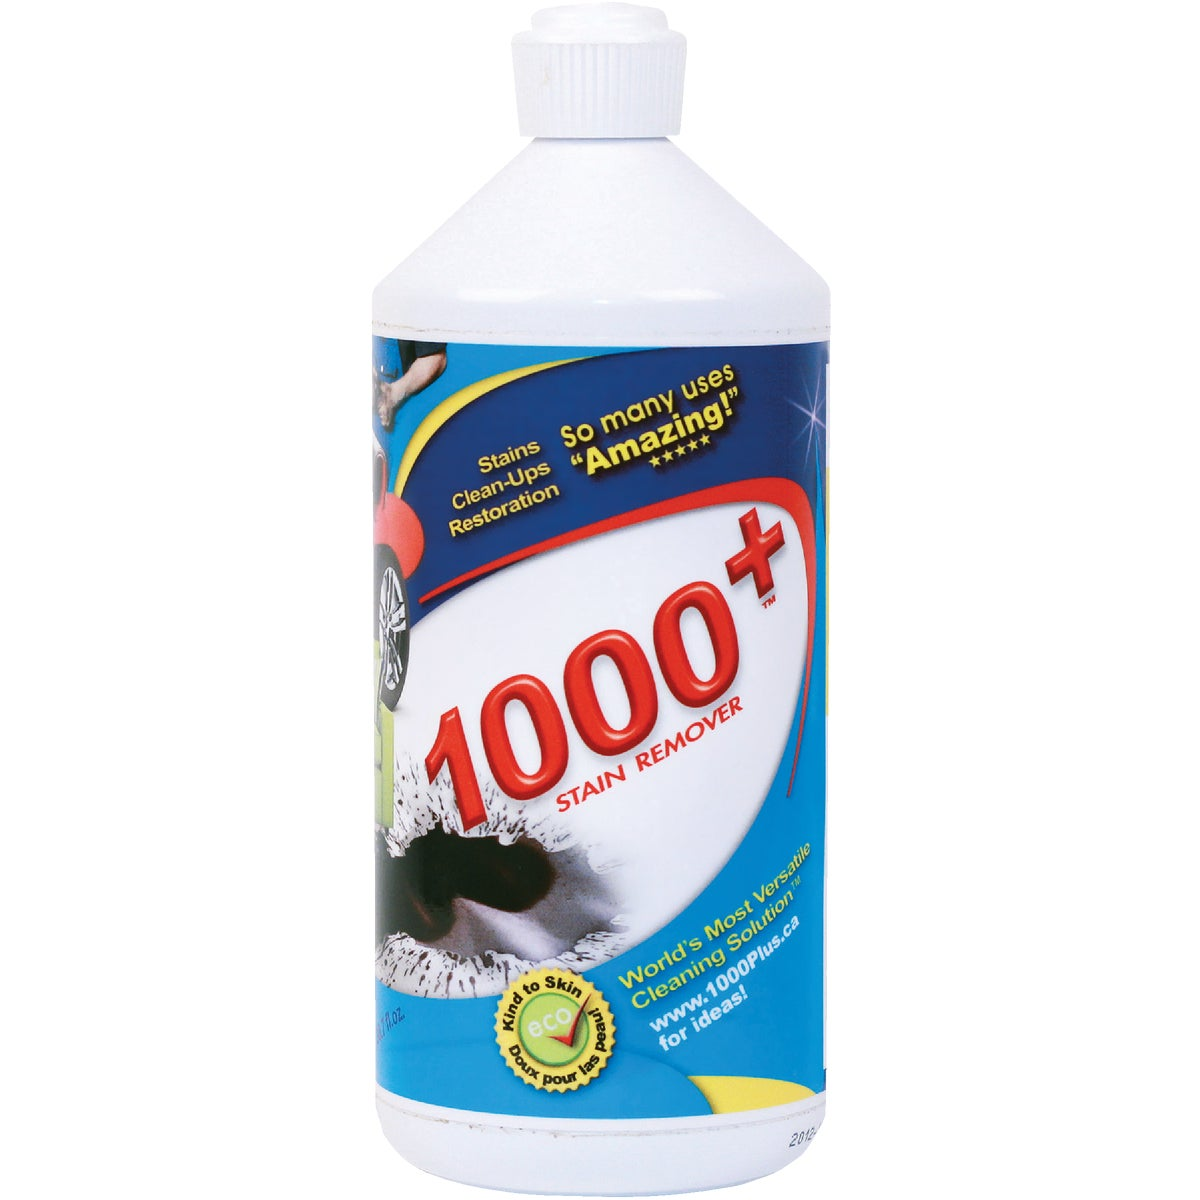 1000+ 30.7 Oz. Stain Remover